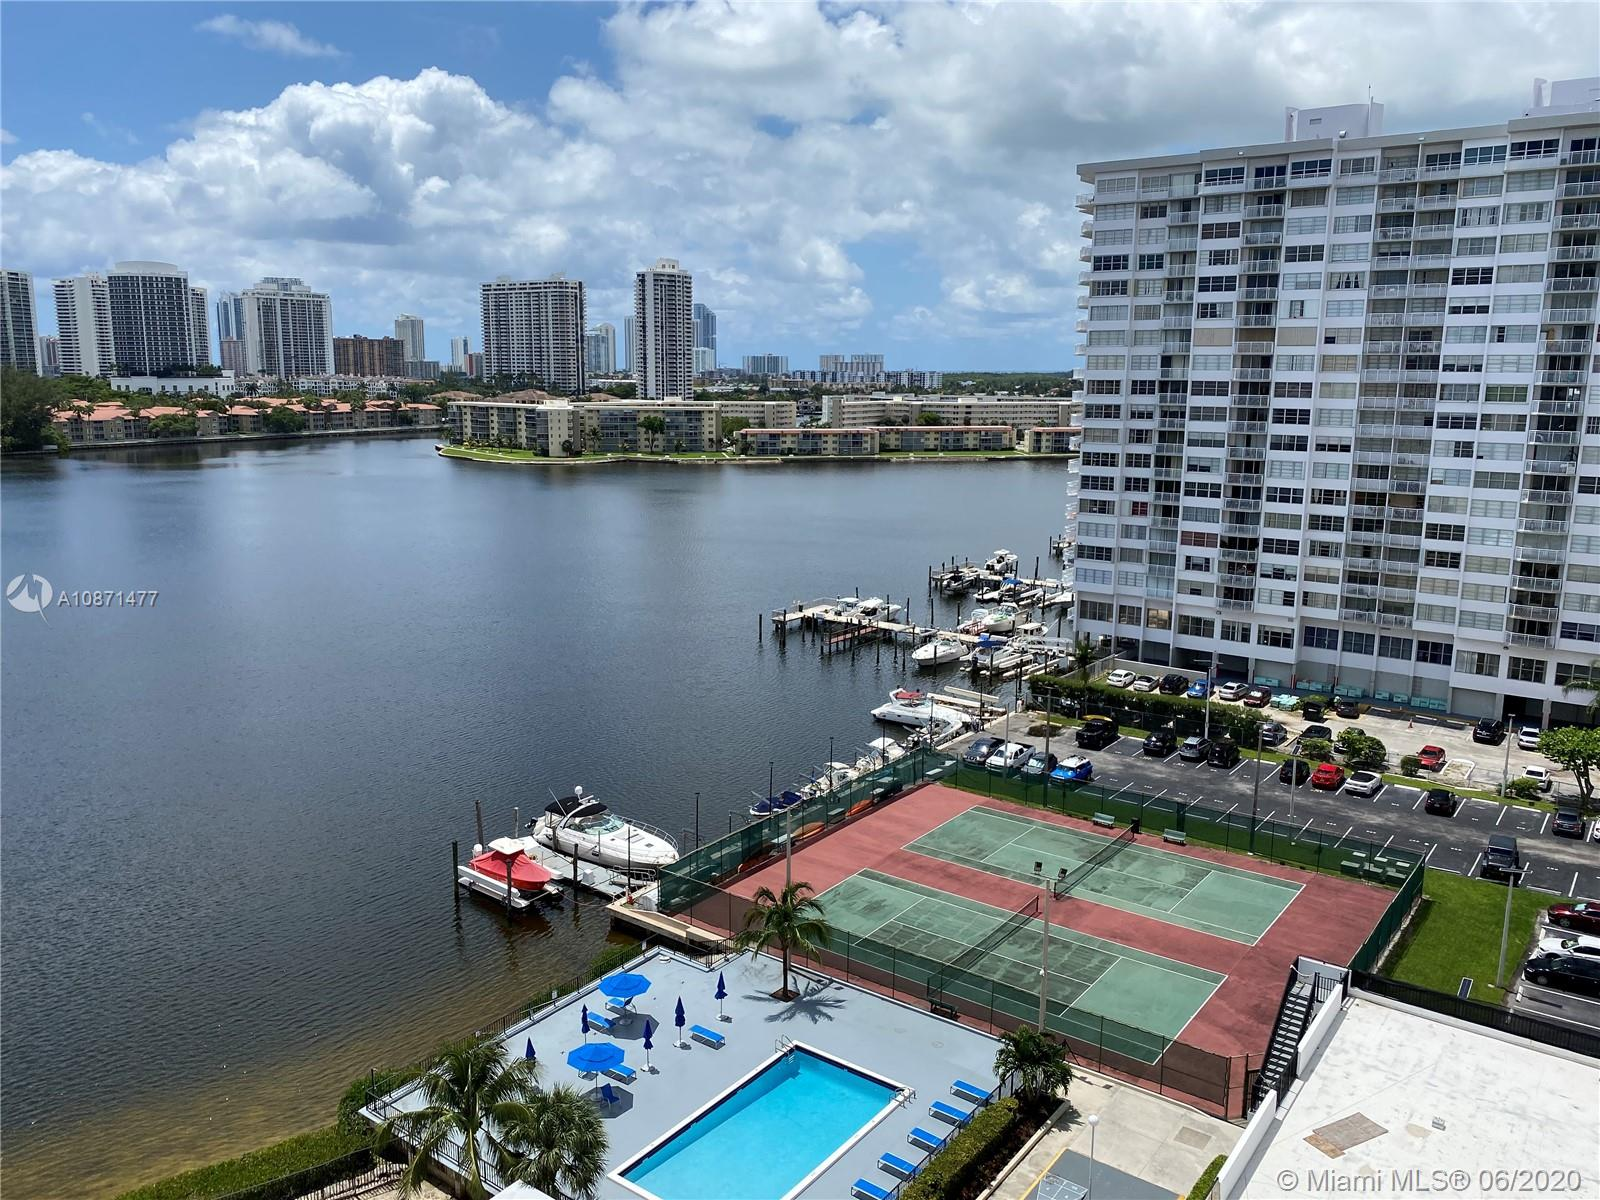 2780 NE 183rd St #1208 For Sale A10871477, FL